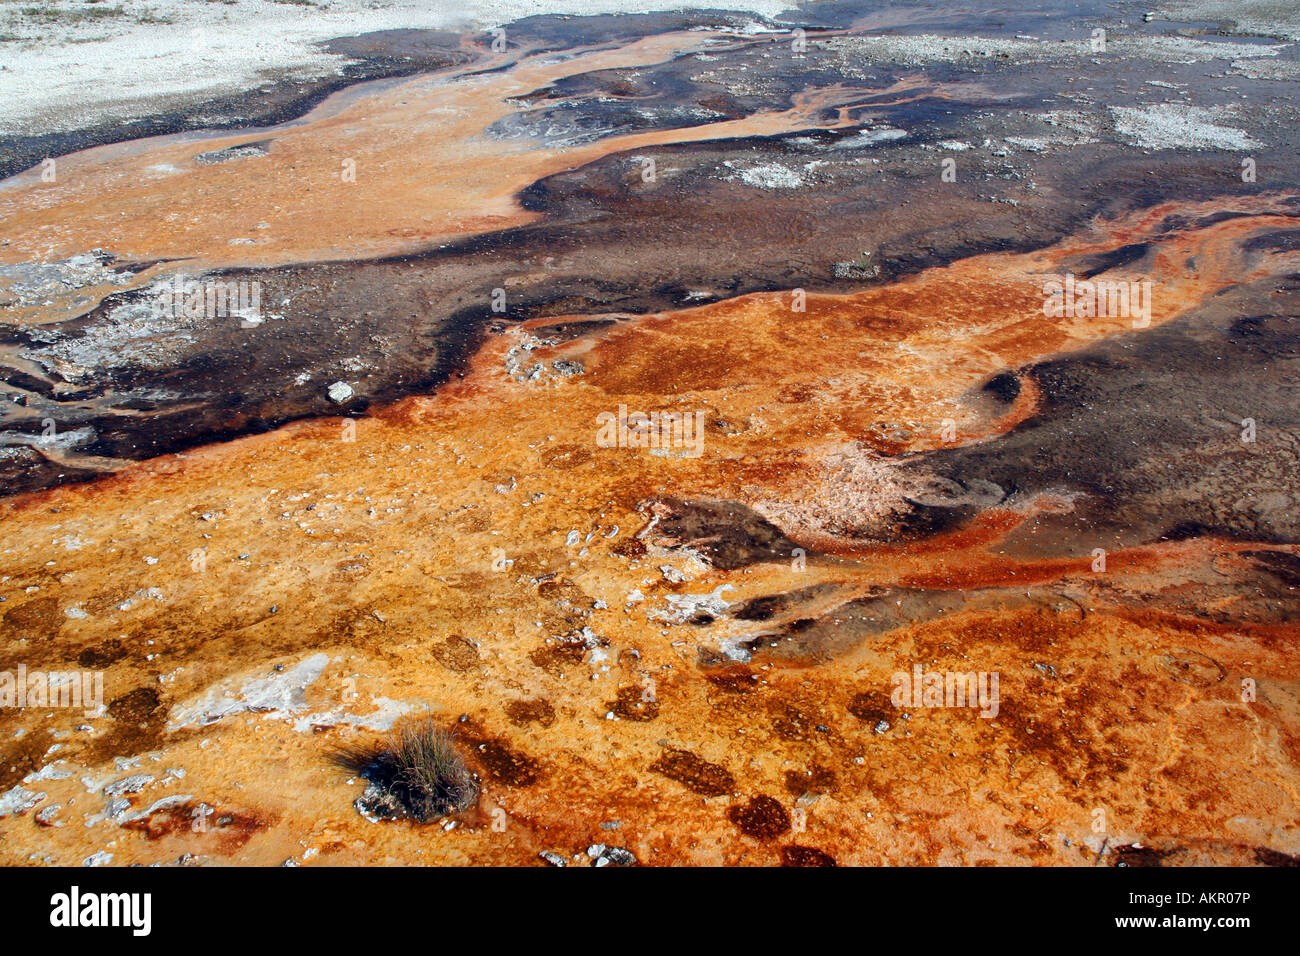 Thermal features, runoff channel near Sapphire Pool, Biscuit Basin, Yellowstone National Park - Stock Image